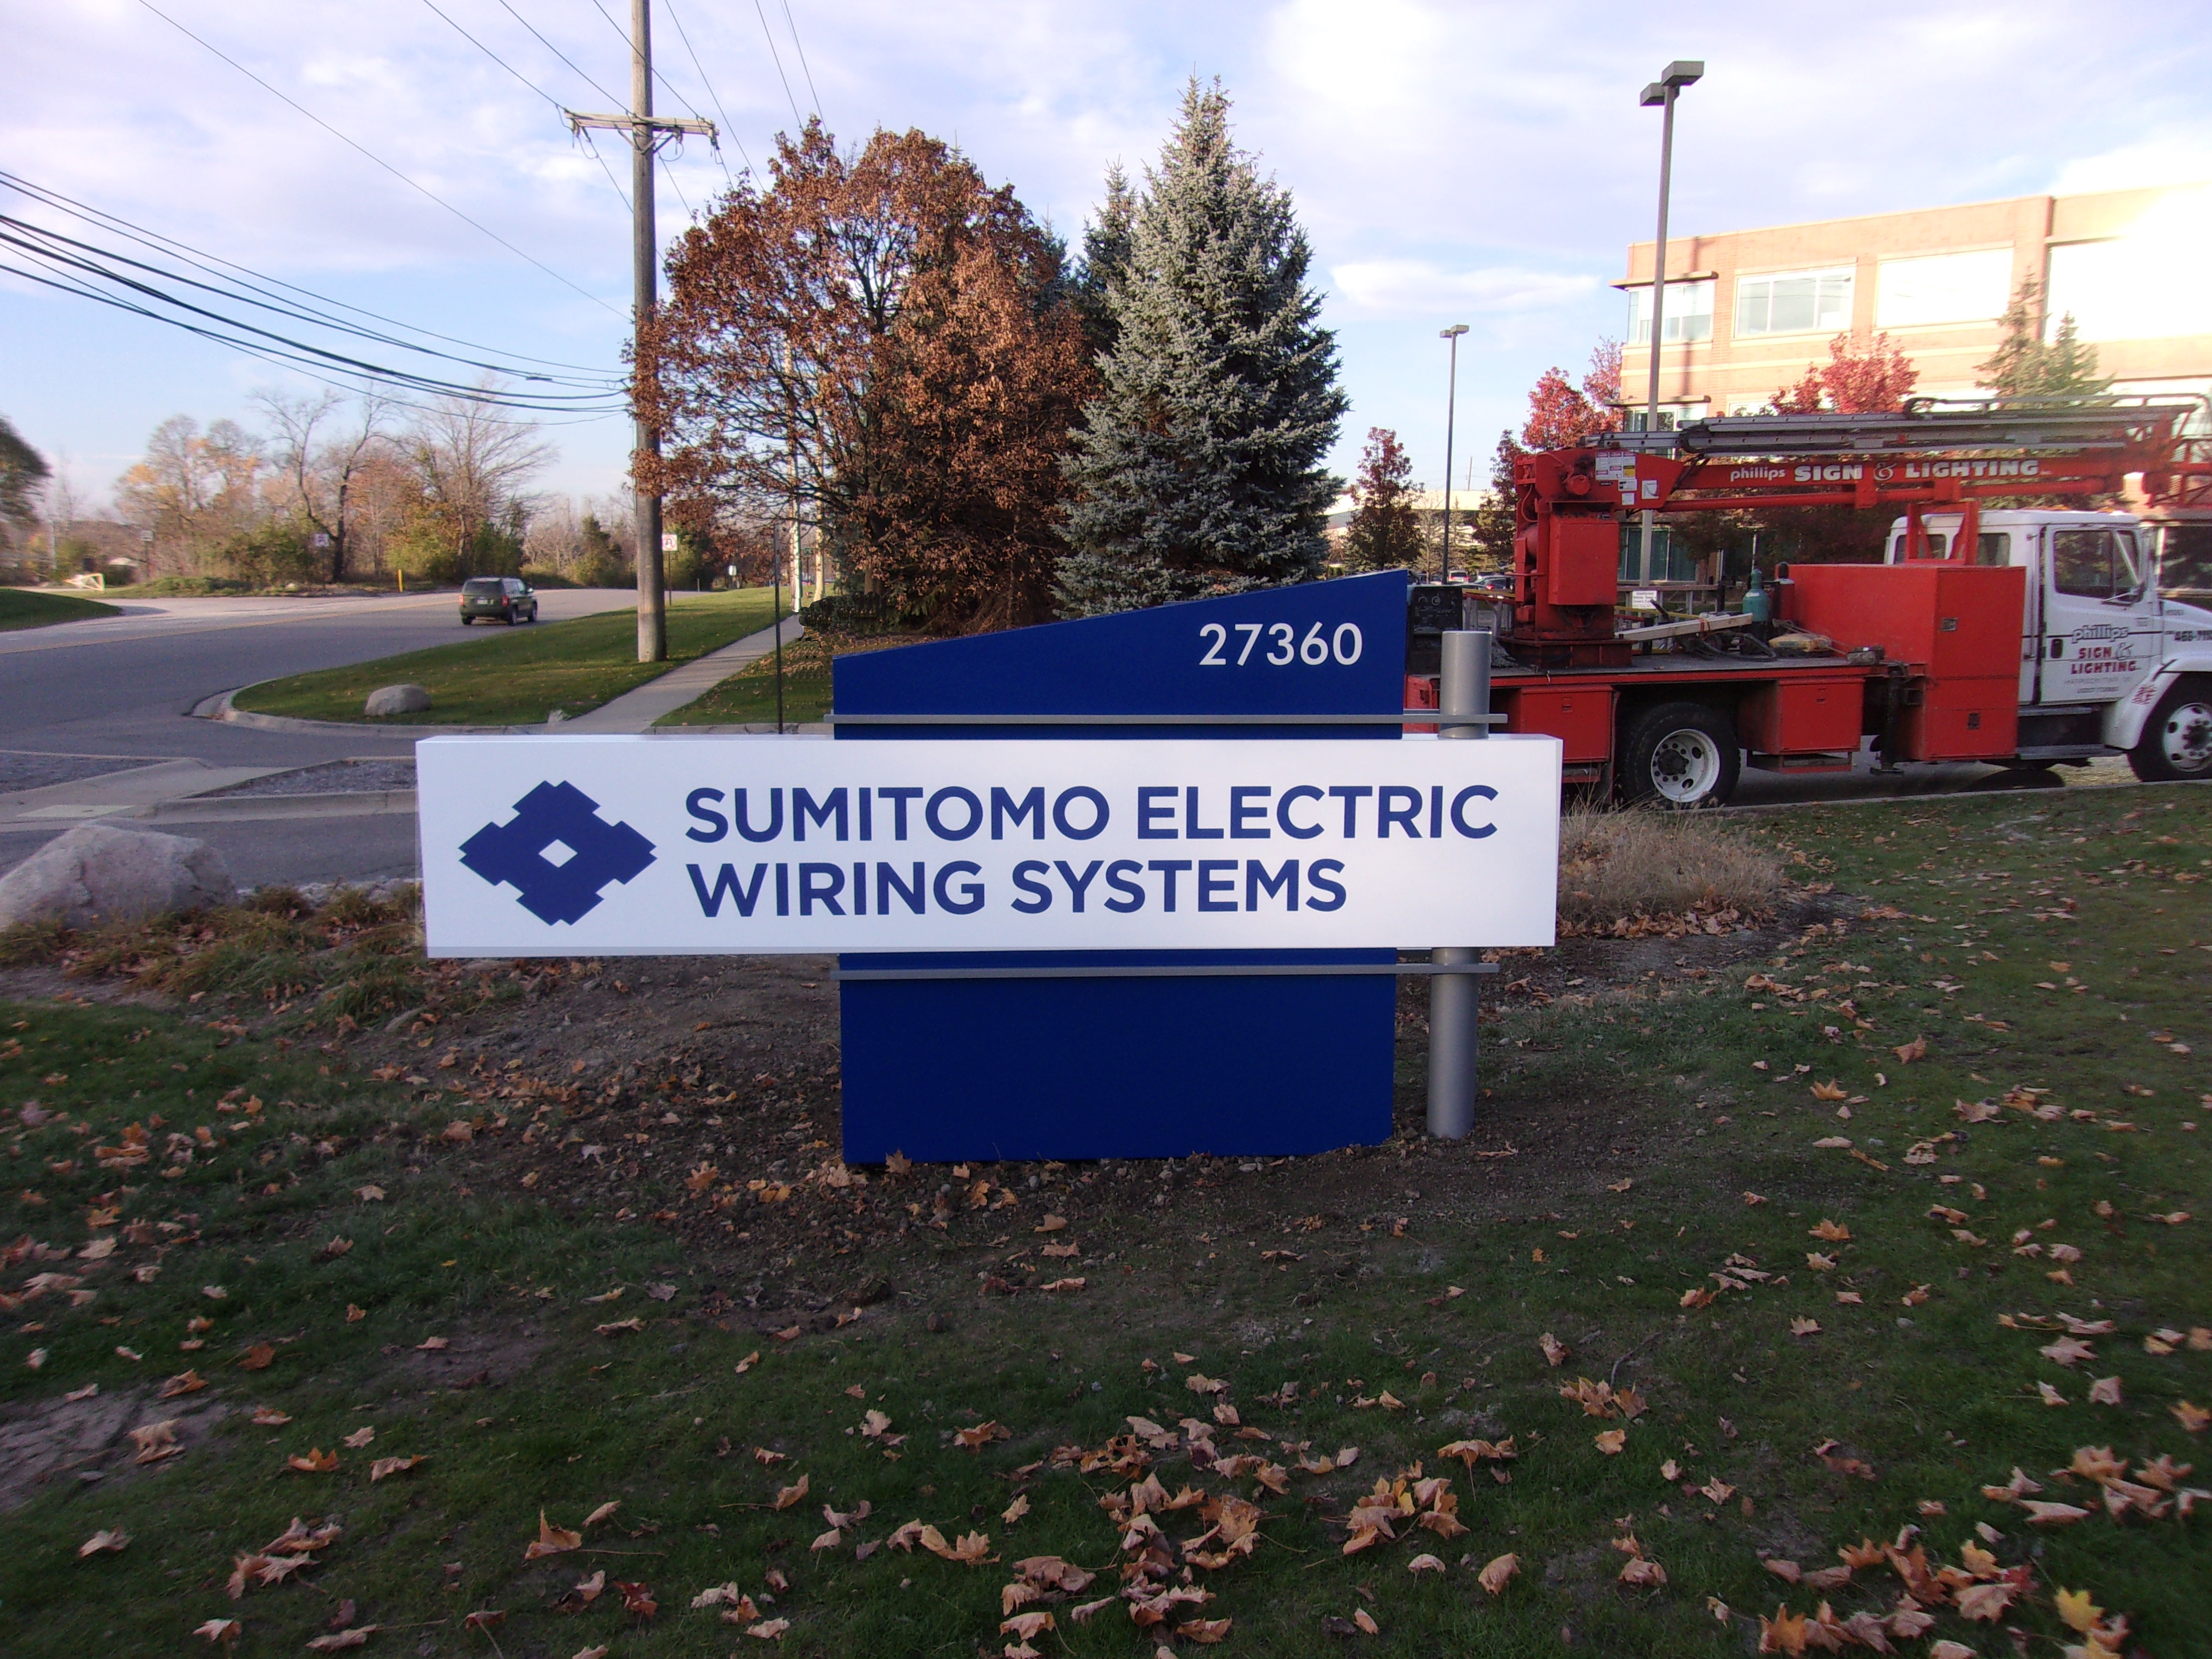 Sumitomo Electric Wiring Systems Farmington Hills